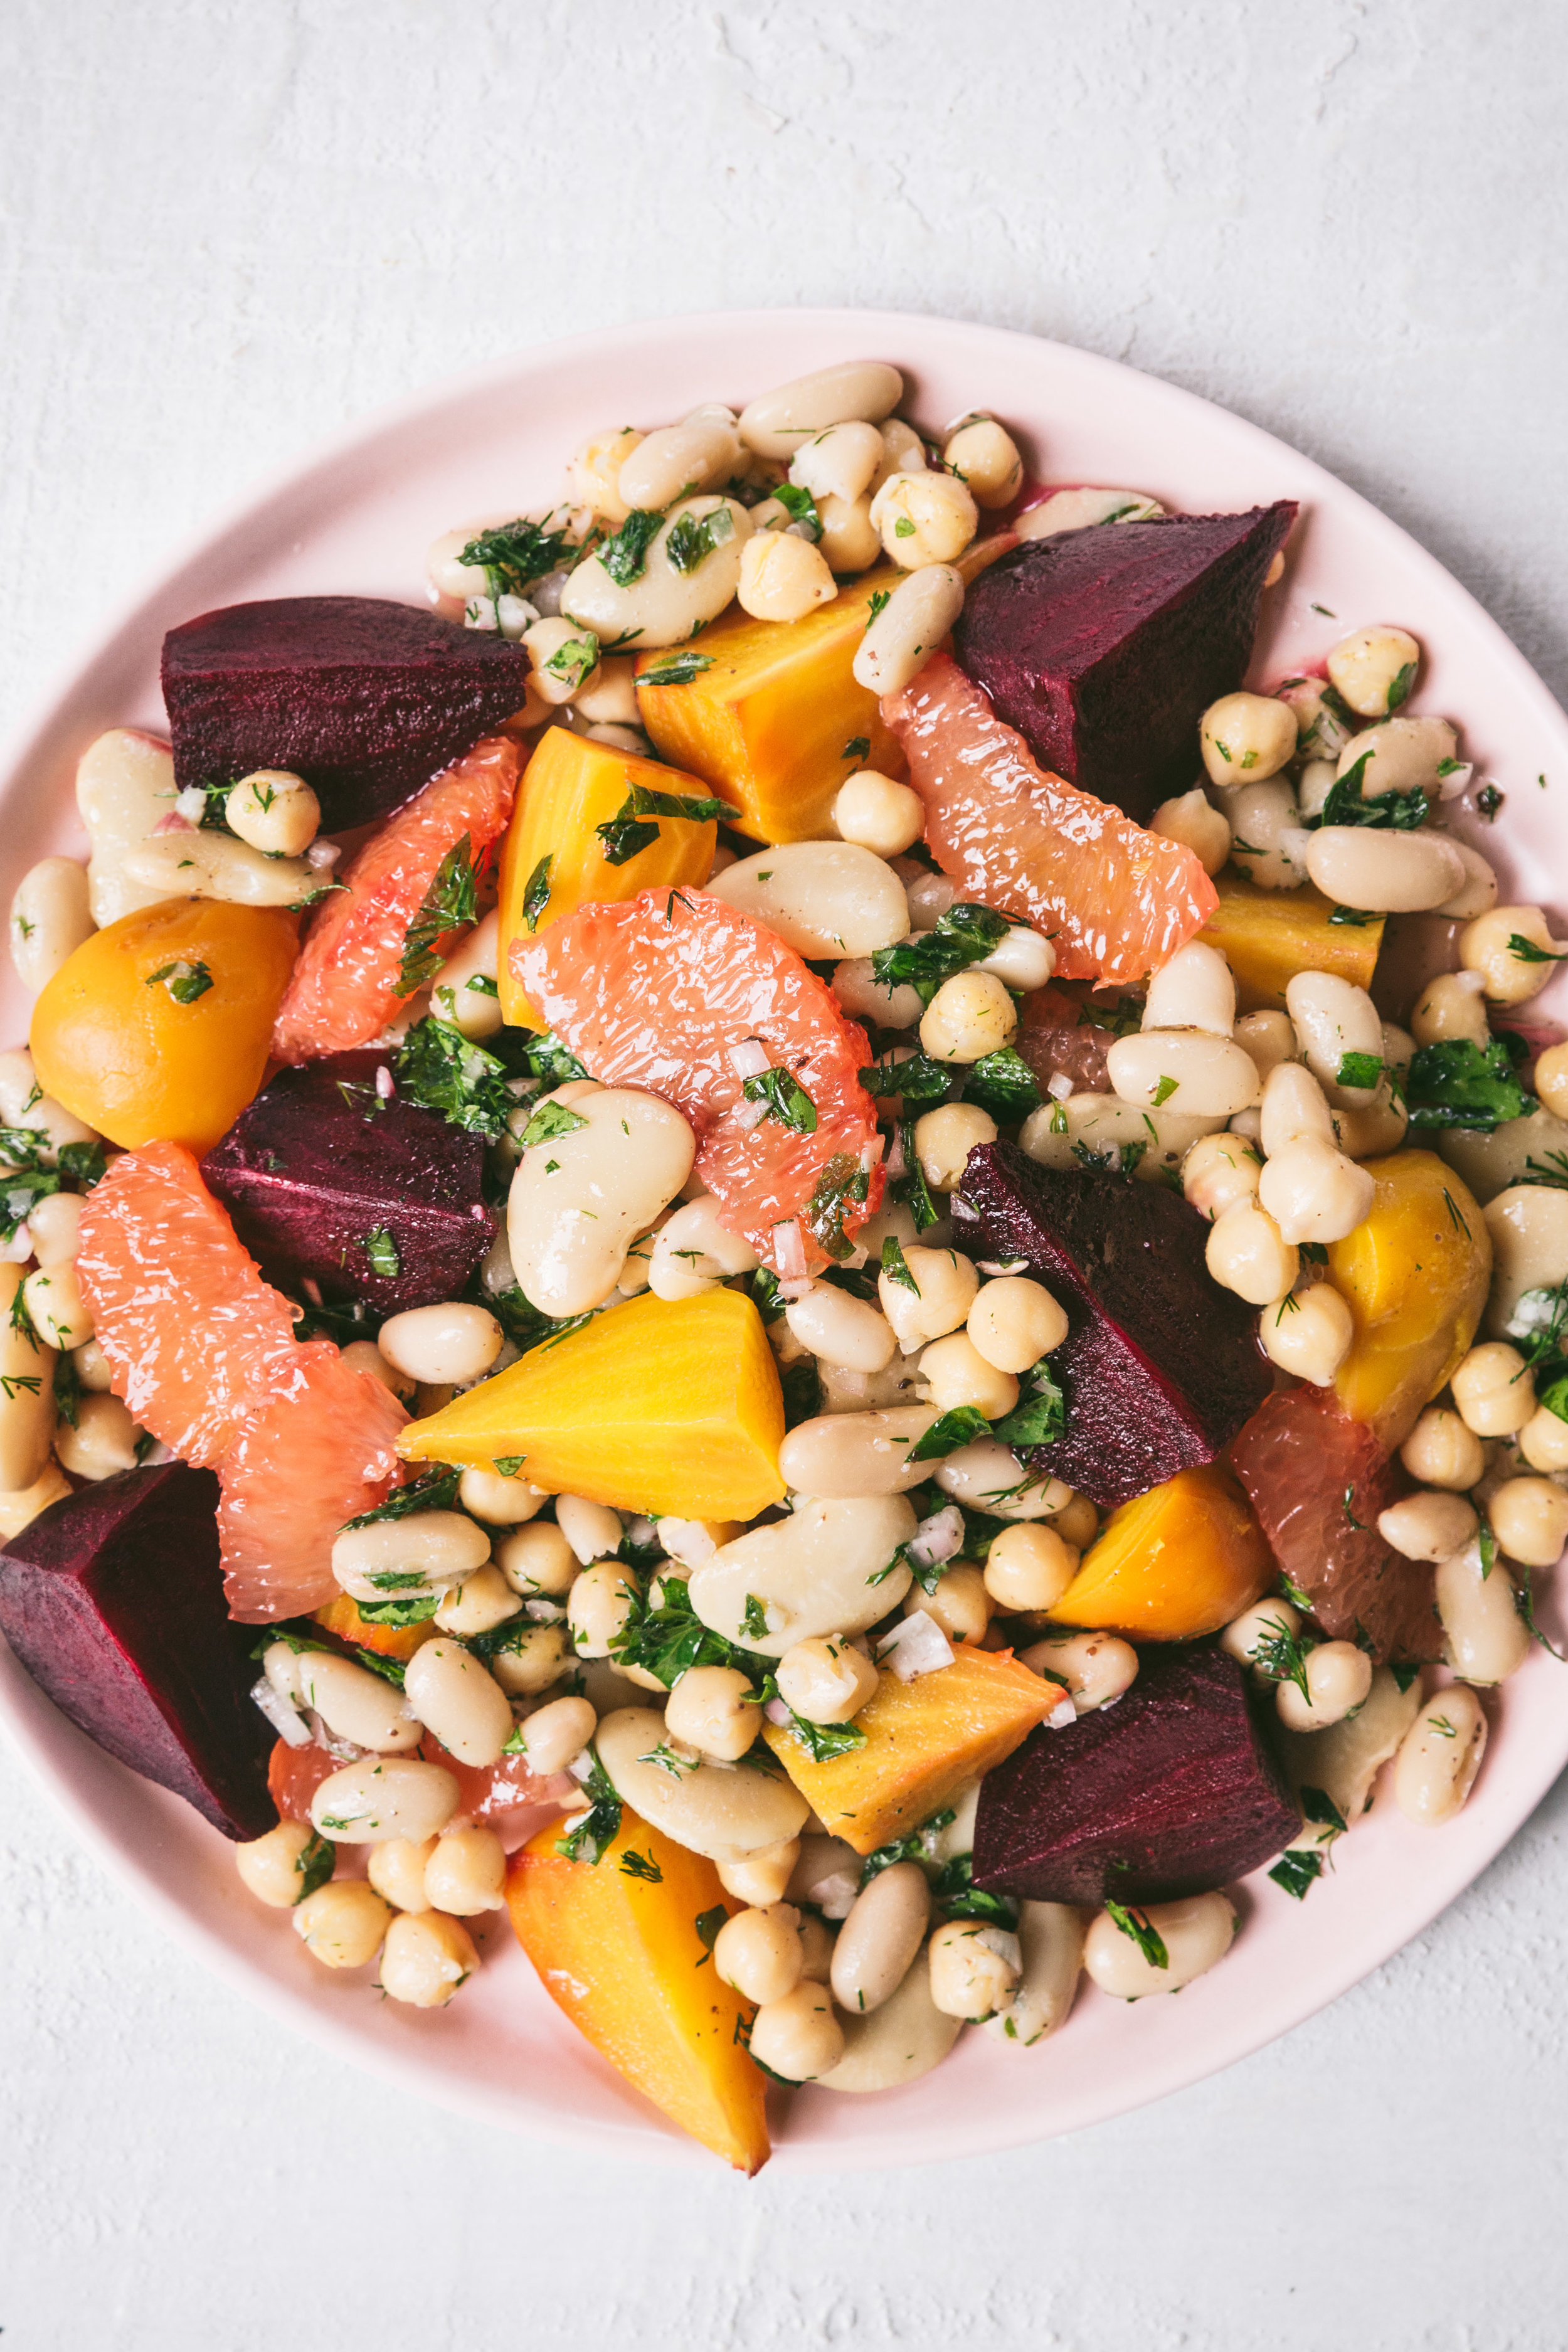 Marinated Pulse Citrus Salad with Beets (7 of 1).jpg